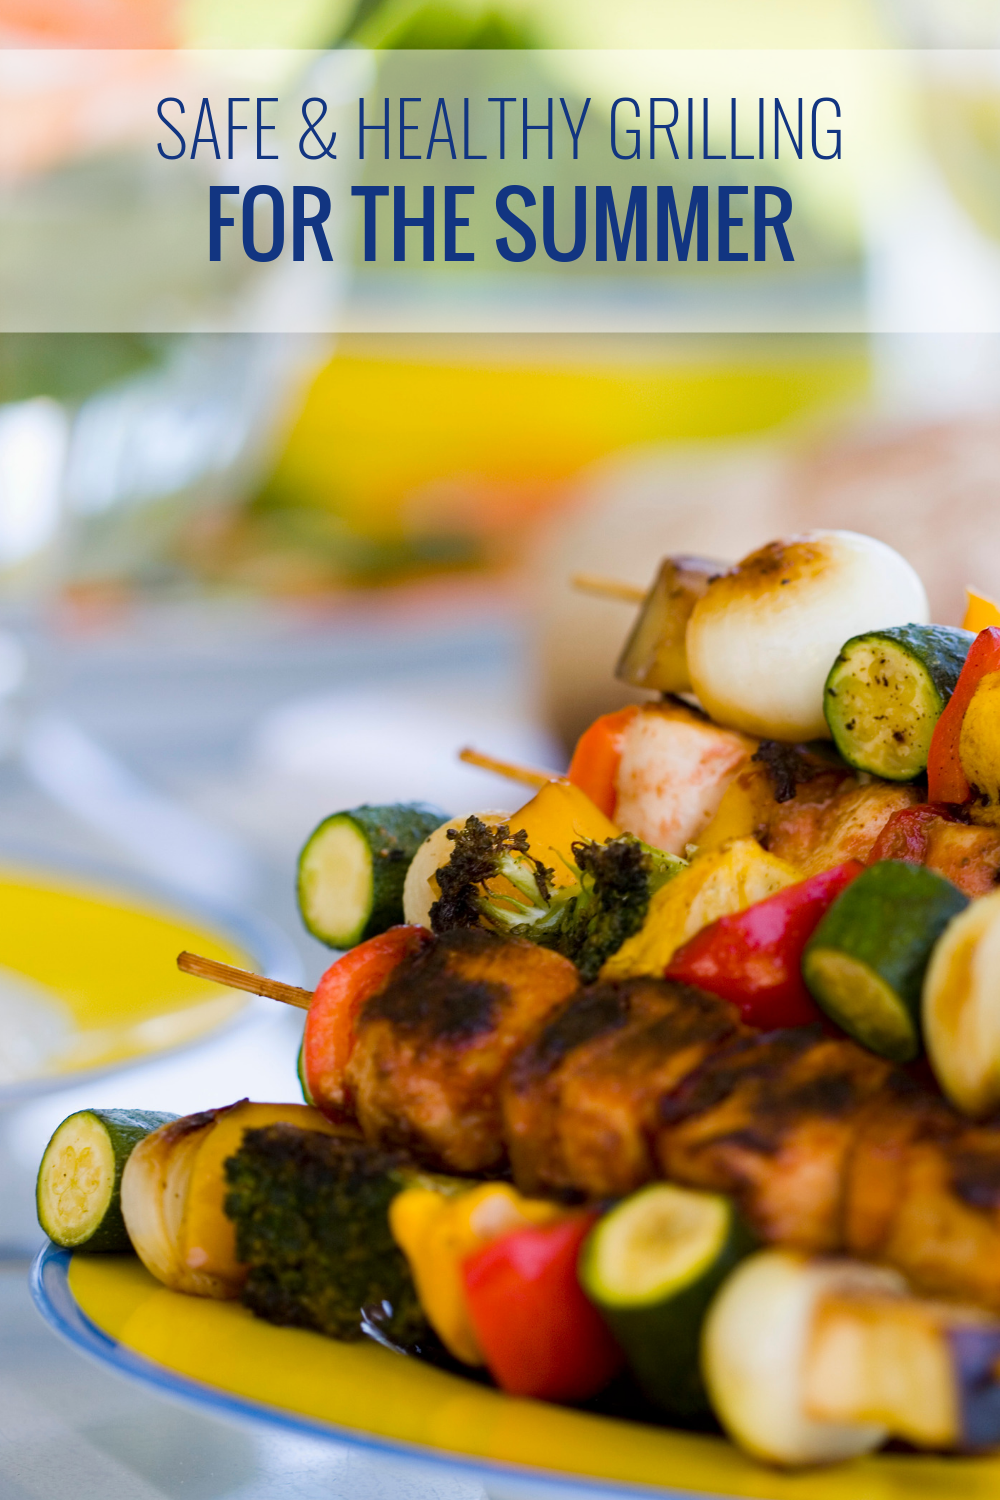 Safe & Healthy Grilling for the Summer